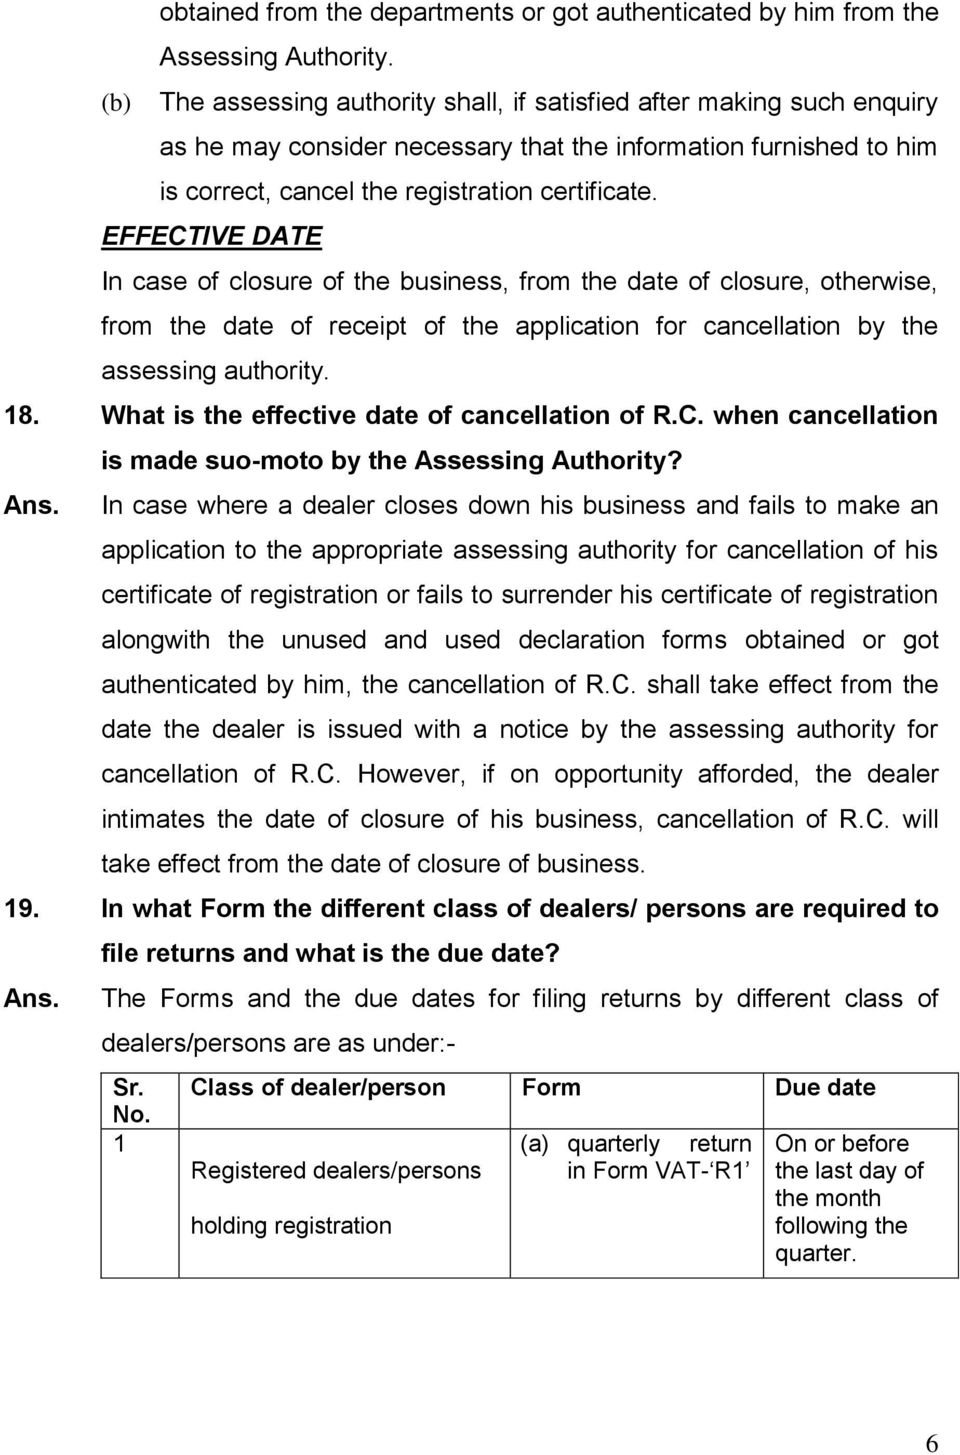 EFFECTIVE DATE In case of closure of the business, from the date of closure, otherwise, from the date of receipt of the application for cancellation by the assessing authority. 18.